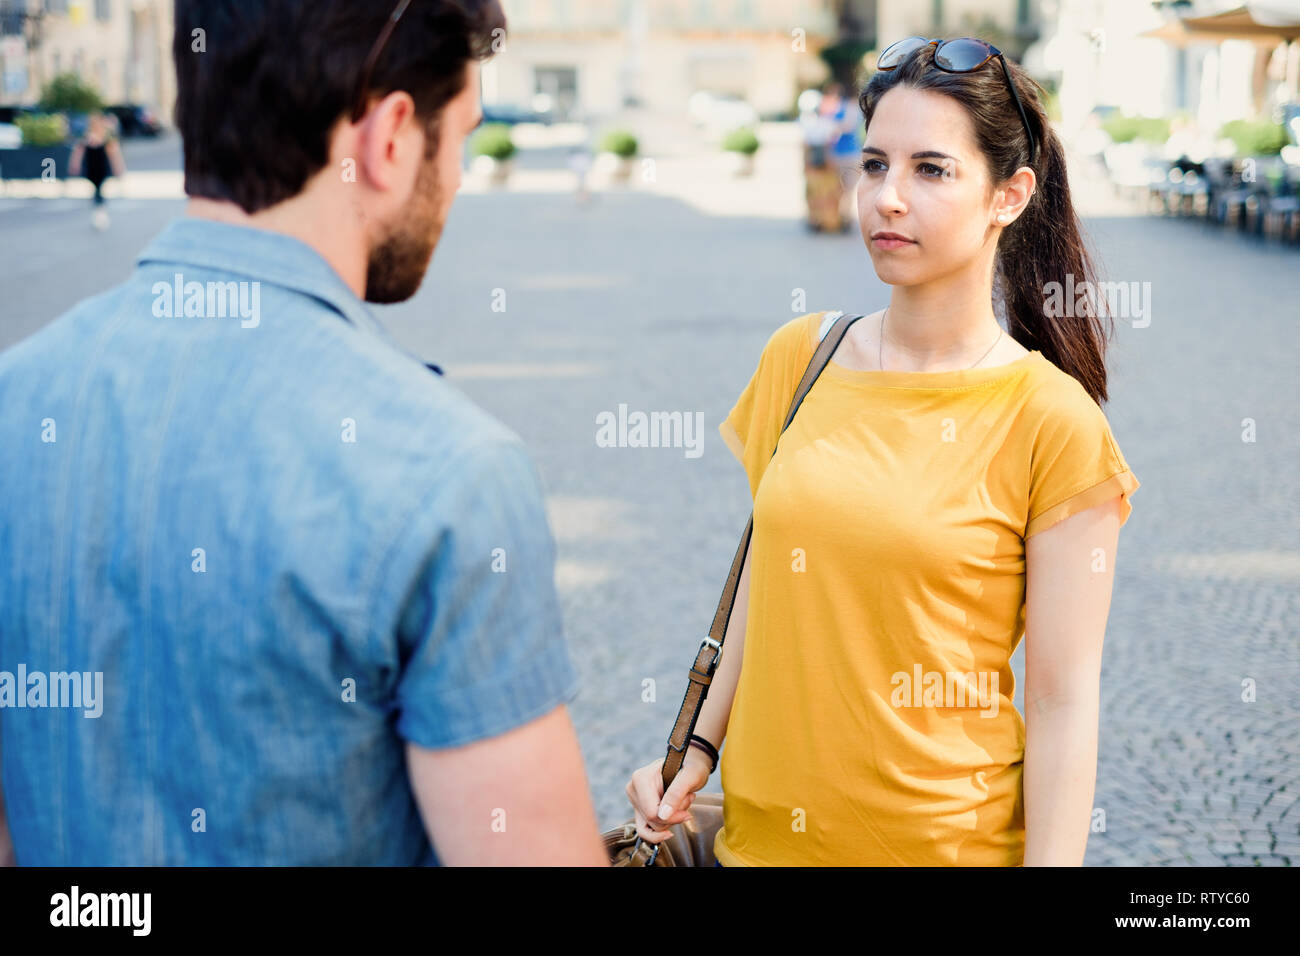 Young couple arguing in the city street - Stock Image